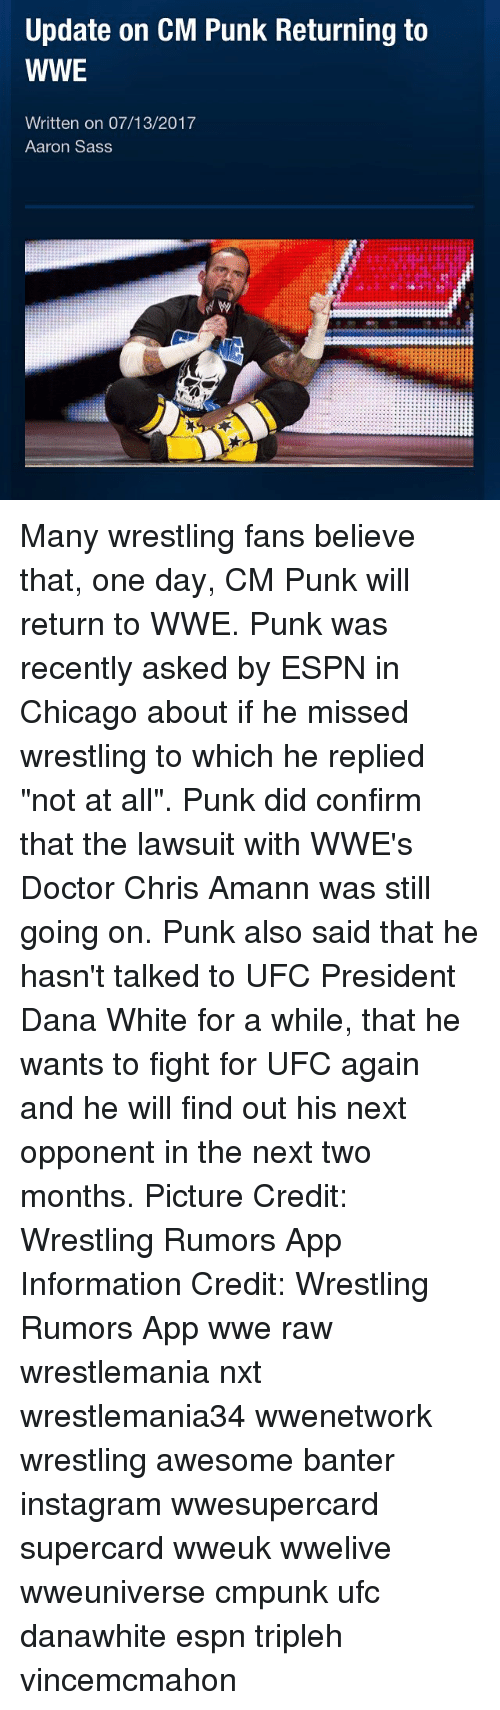 """Confirmated: Update on CM Punk Returning to  WWE  Written on 07/13/2017  Aaron Sass Many wrestling fans believe that, one day, CM Punk will return to WWE. Punk was recently asked by ESPN in Chicago about if he missed wrestling to which he replied """"not at all"""". Punk did confirm that the lawsuit with WWE's Doctor Chris Amann was still going on. Punk also said that he hasn't talked to UFC President Dana White for a while, that he wants to fight for UFC again and he will find out his next opponent in the next two months. Picture Credit: Wrestling Rumors App Information Credit: Wrestling Rumors App wwe raw wrestlemania nxt wrestlemania34 wwenetwork wrestling awesome banter instagram wwesupercard supercard wweuk wwelive wweuniverse cmpunk ufc danawhite espn tripleh vincemcmahon"""